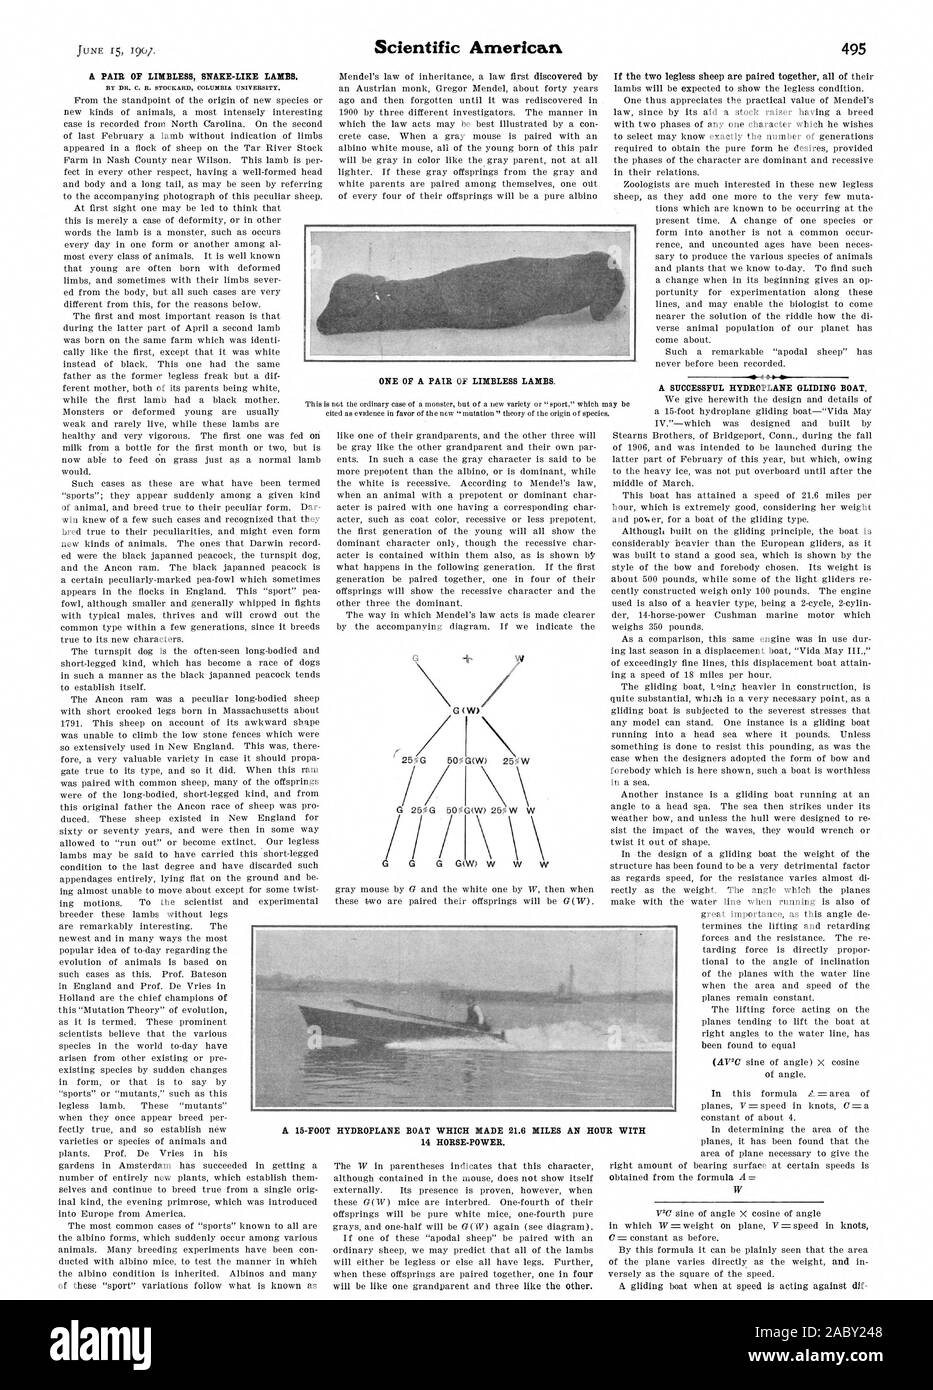 A PAIR OF LIMBLESS SNAKE-LIKE LAMBS. A SUCCESSFUL HYDROPLANE GLIDING BOAT. ONE OF A PAIR OF LIMBLESS LAMBS. UR WITH 14 HORSE-POWER., scientific american, 1907-06-15 Stock Photo